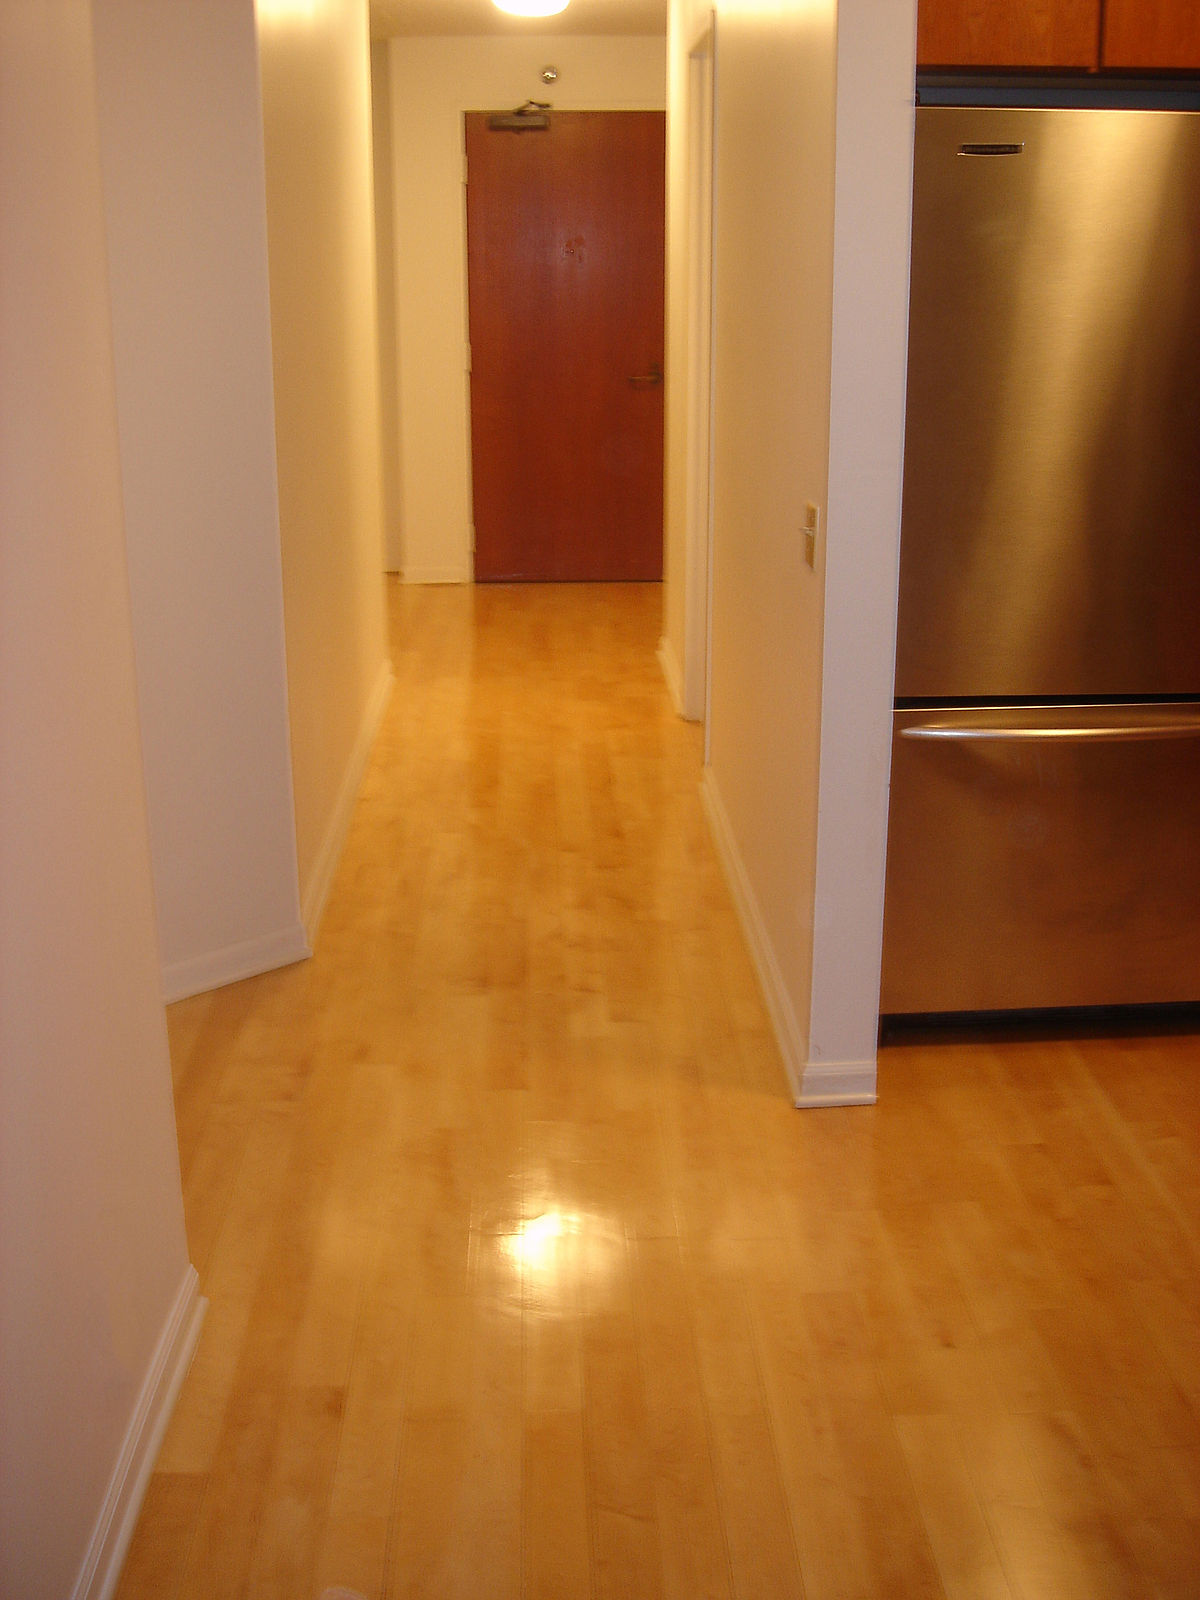 perfect to our but that wood for choice floors flooring an budget more alternative trying is a option img and the floor economical services hardwood ht remodel look want friendly go laminate